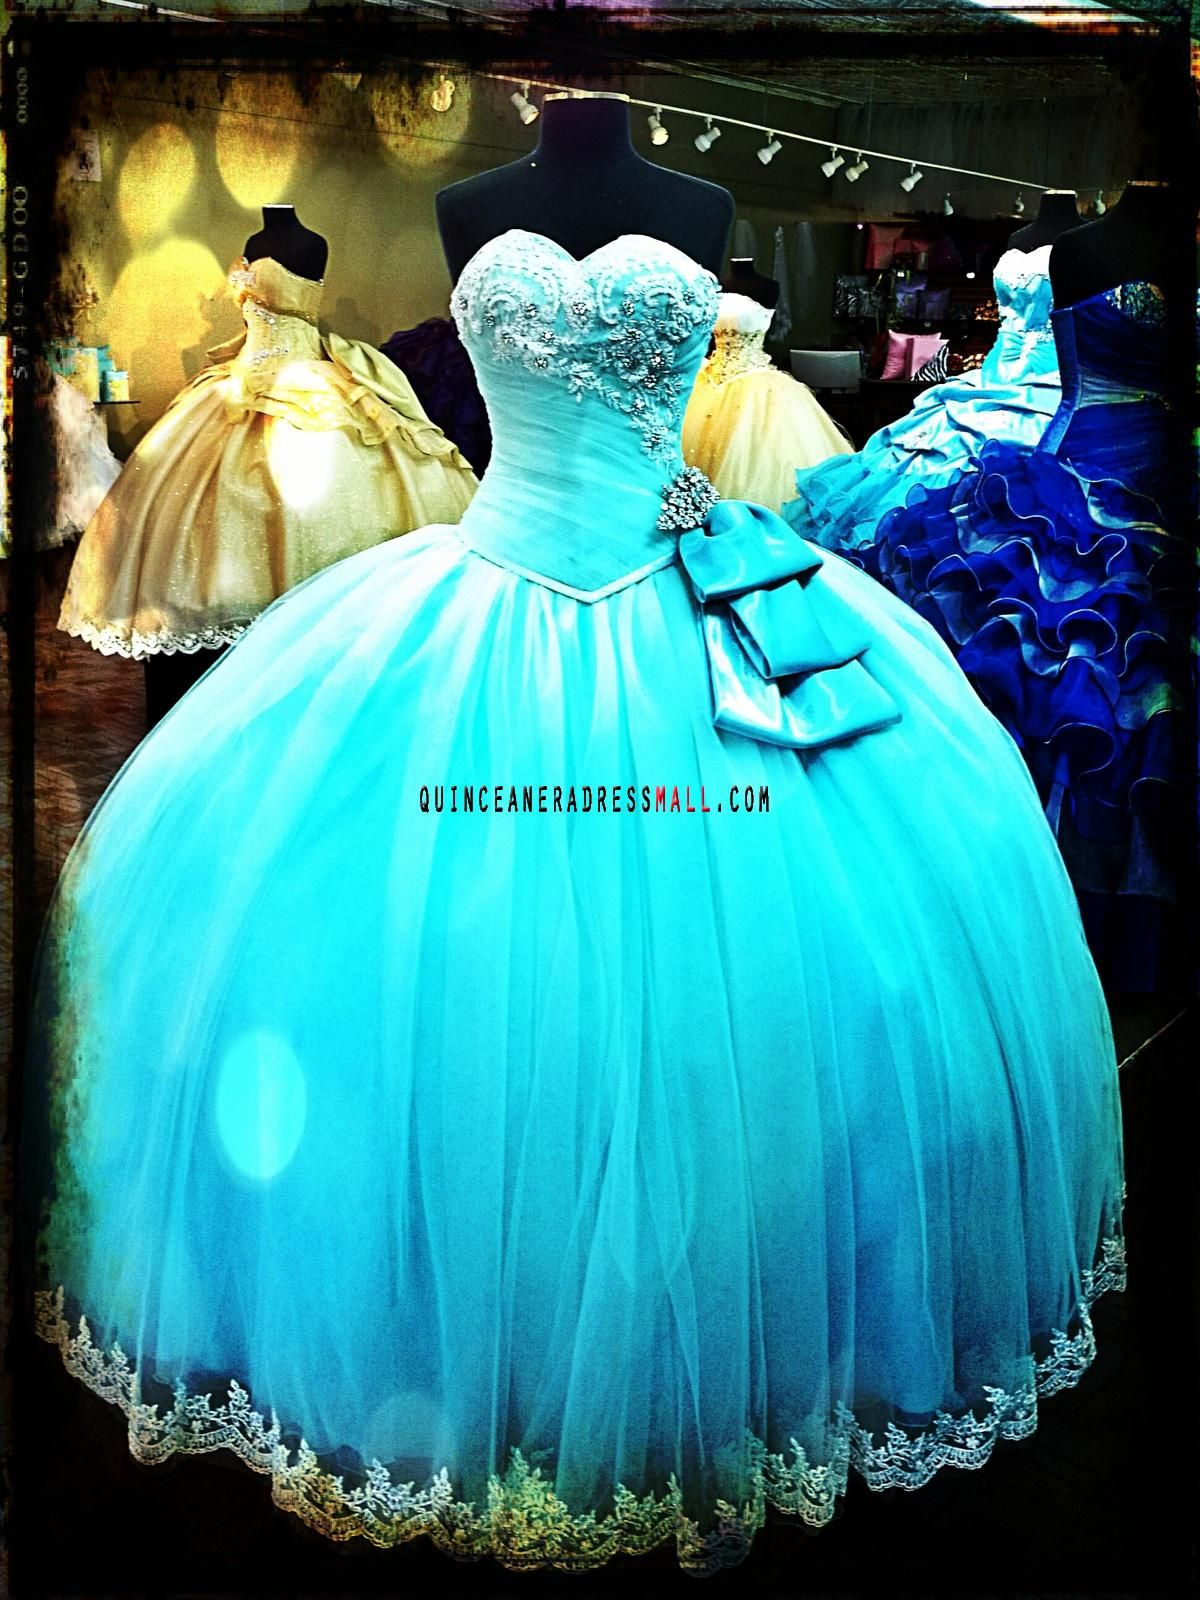 New quinceanera ball gown turquoise applique lace tulle 2014 puffy ...